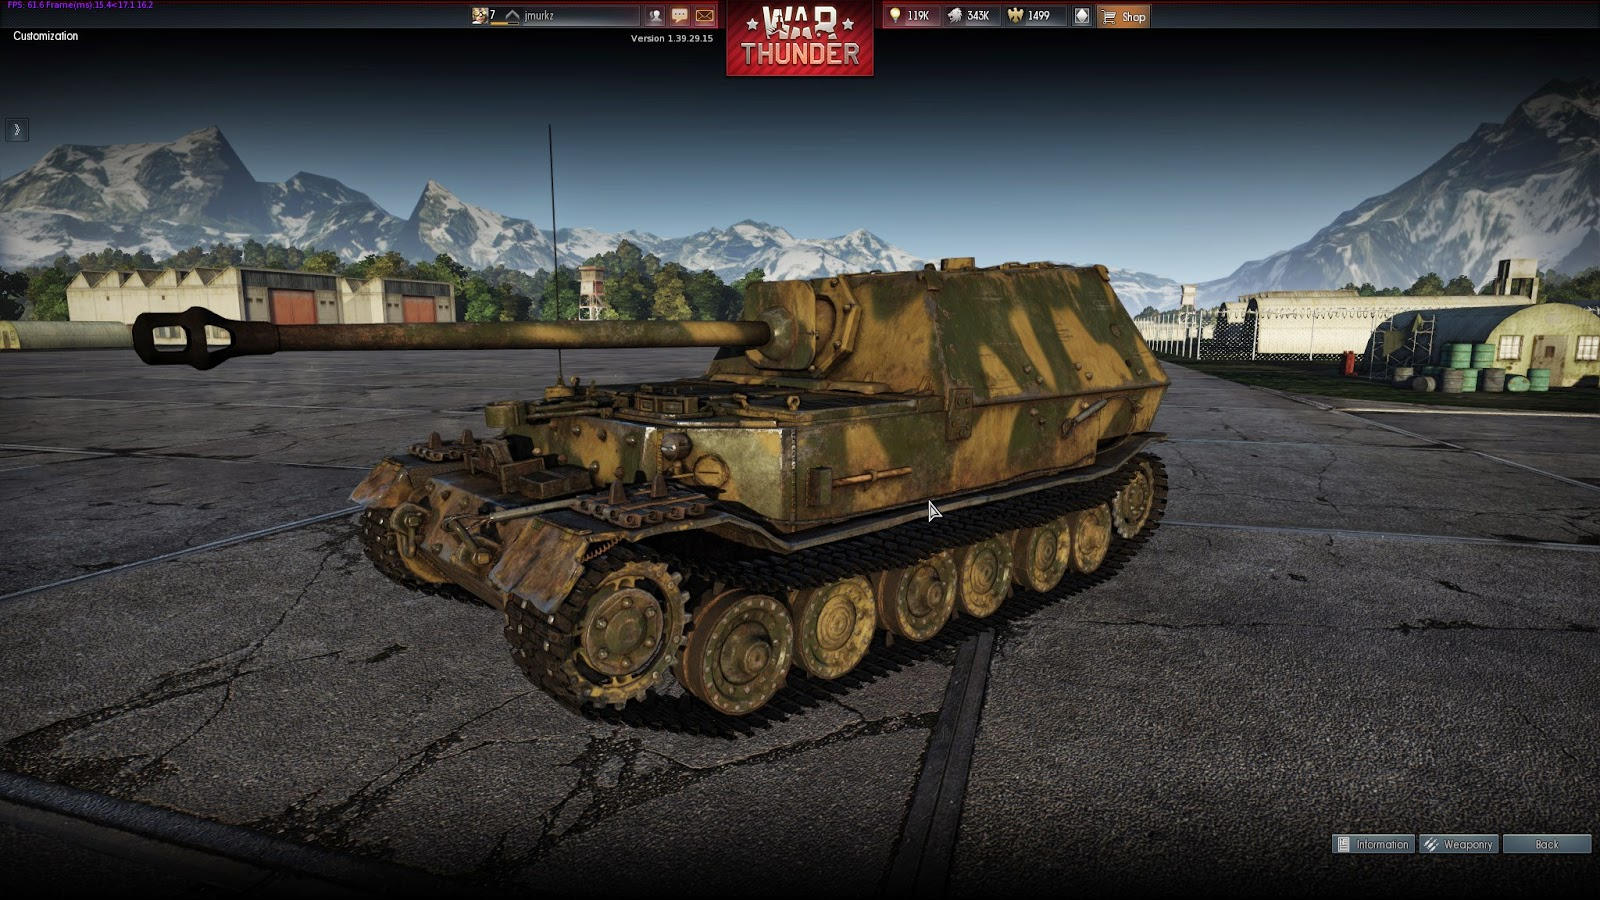 War Thunder CBT on Public Server Shot+2014.04.22+21.42.58